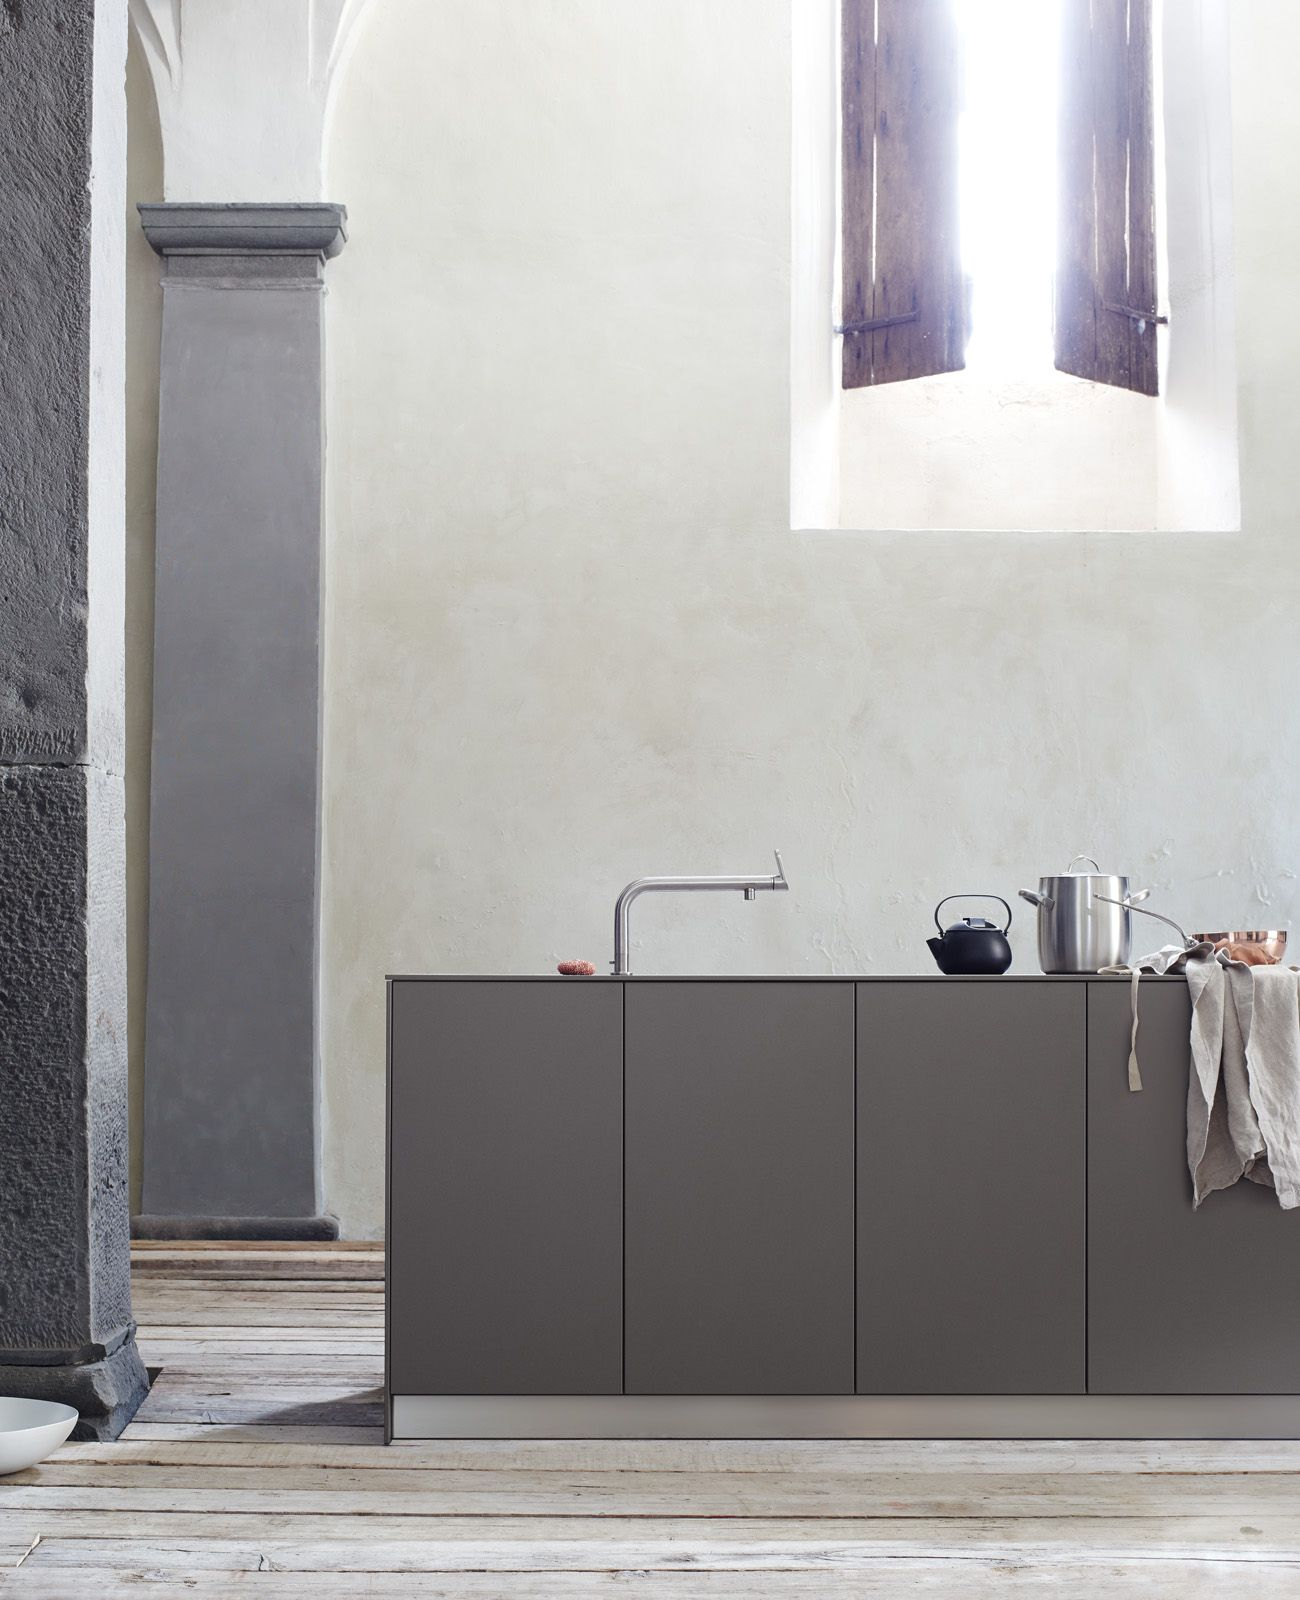 Bulthaupt Küchen Berlin With The Bulthaup Mixer Faucet You Can Control The Flow And